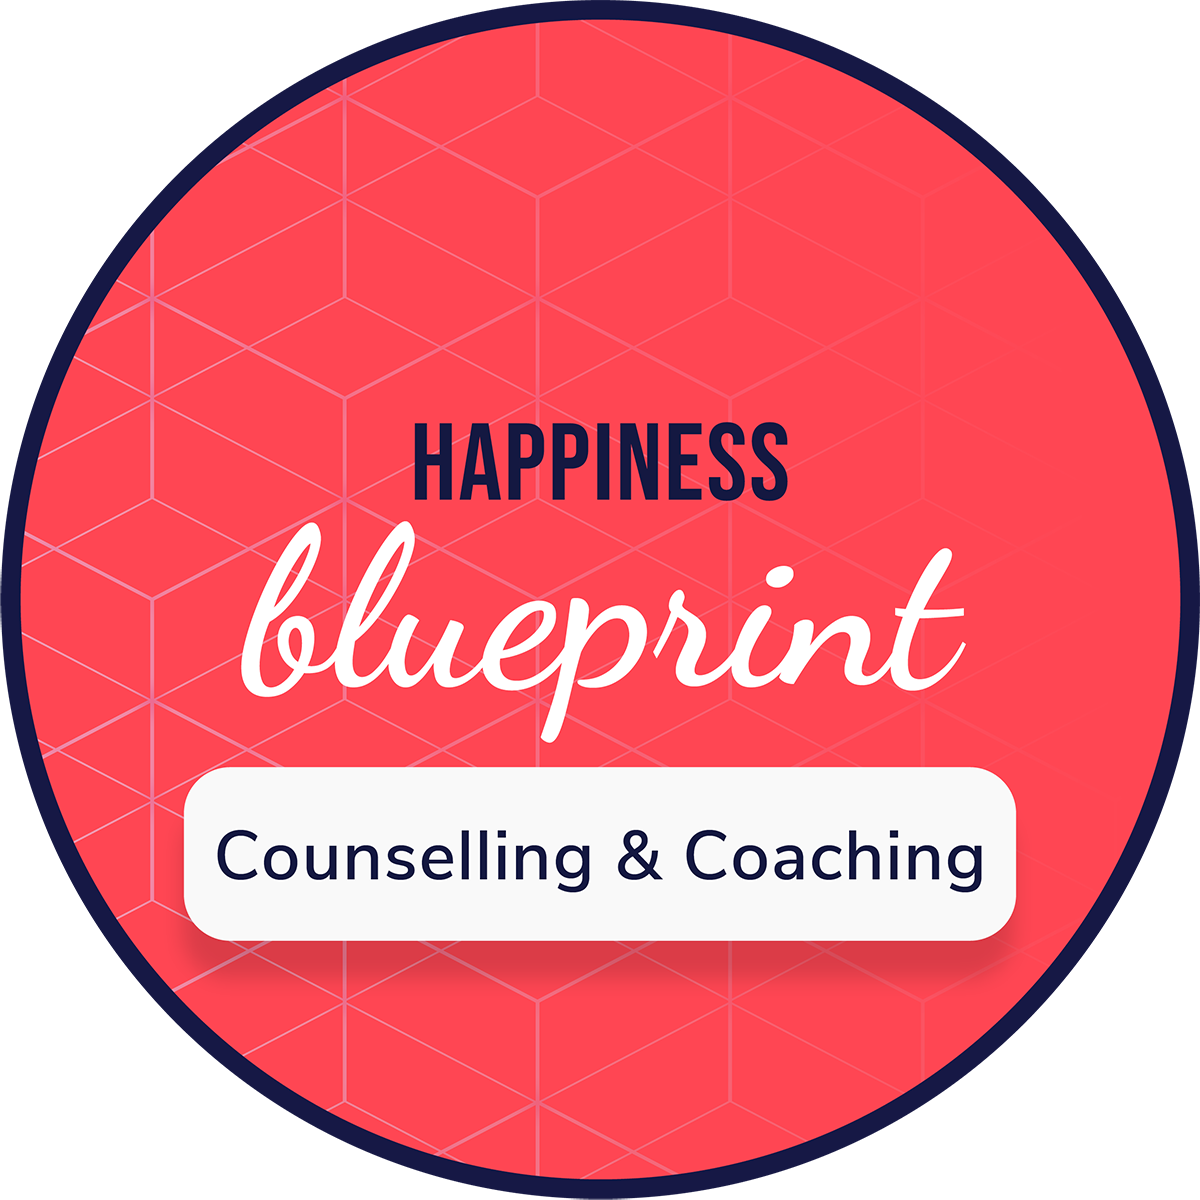 Counselling & Coaching